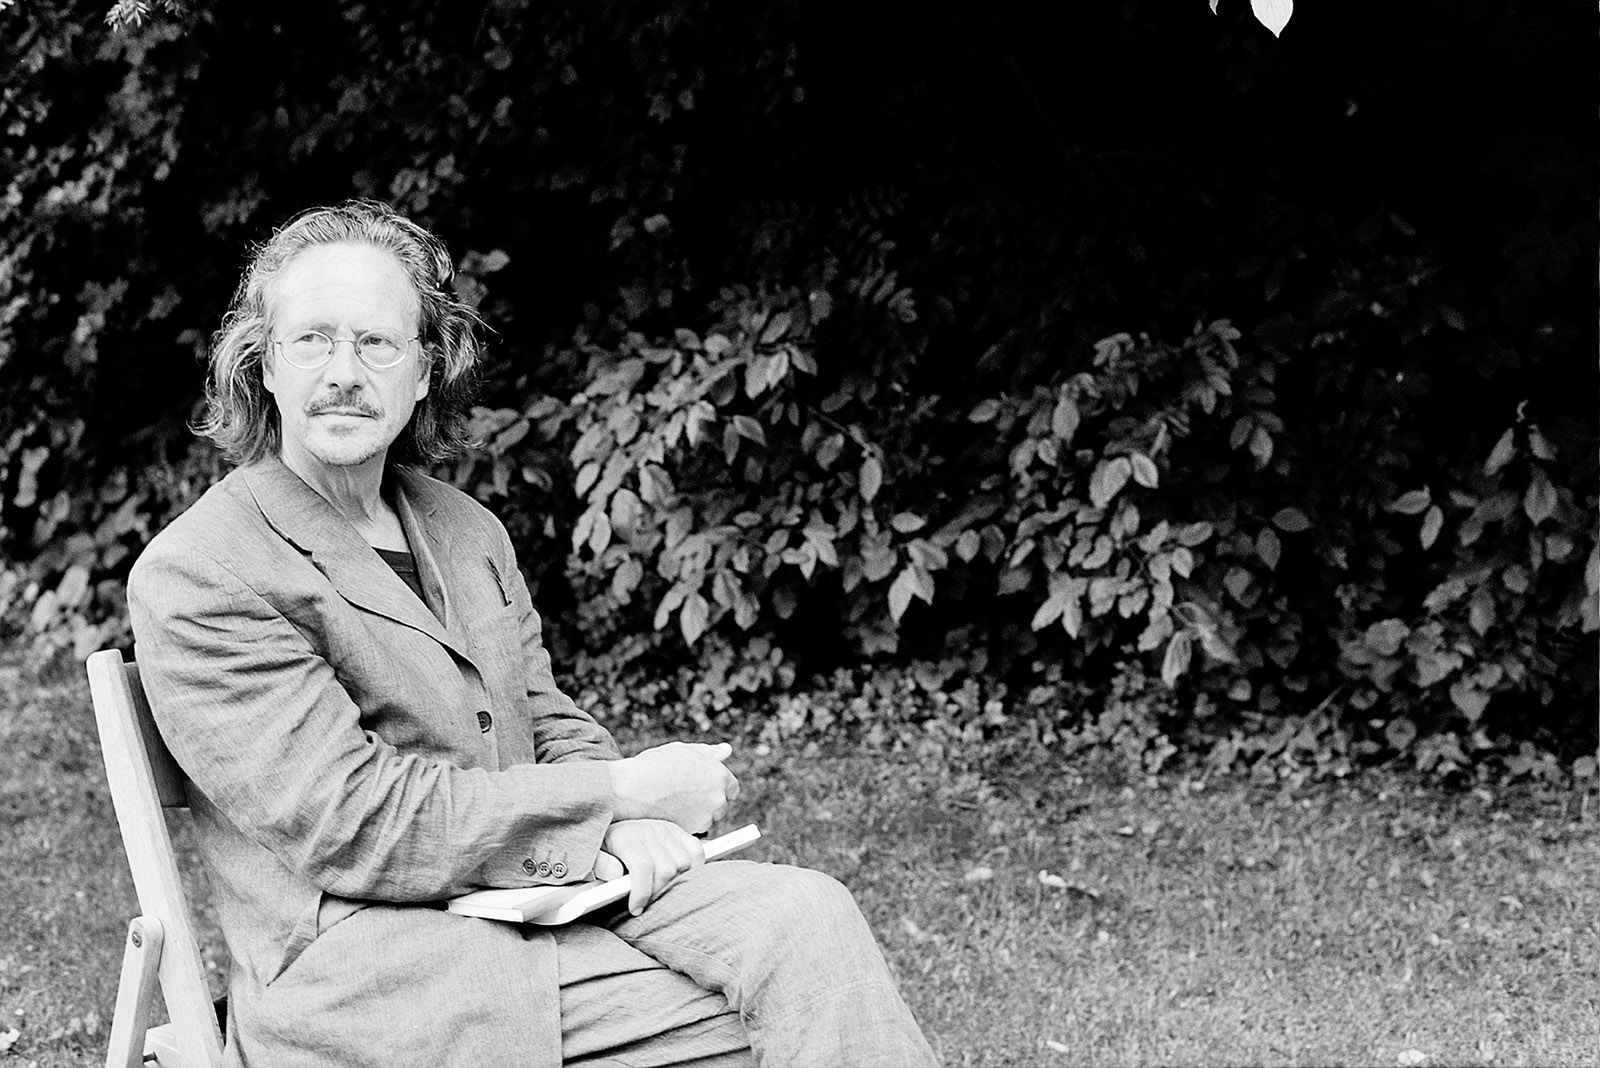 Peter Handke in the garden of Bartenstein Castle, Schrozberg, Germany, 1999